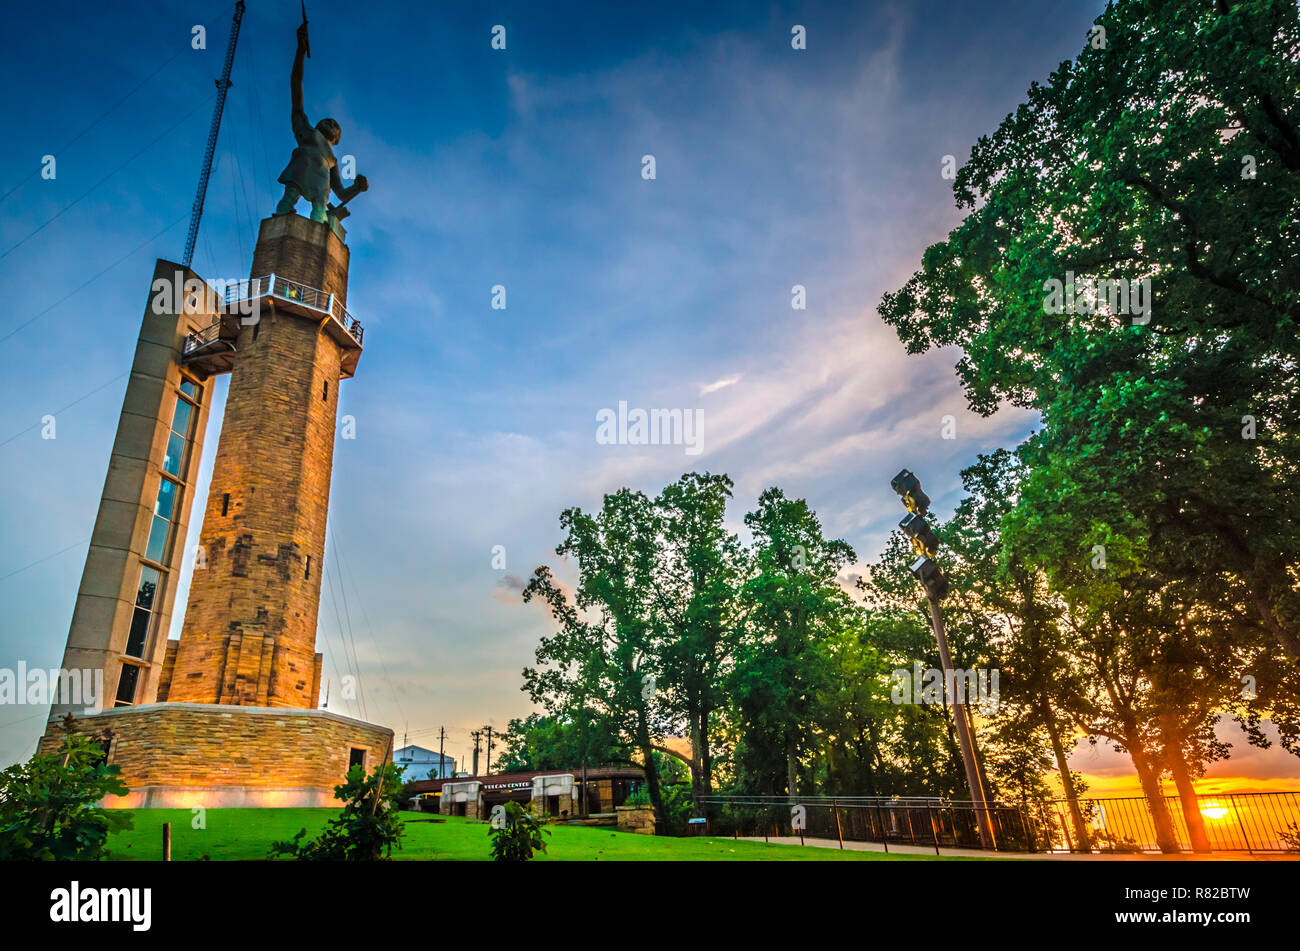 The sun sets at Vulcan Park, July 19, 2015, in Birmingham, Alabama. The park features an iron statue of the Roman God, Vulcan. Stock Photo